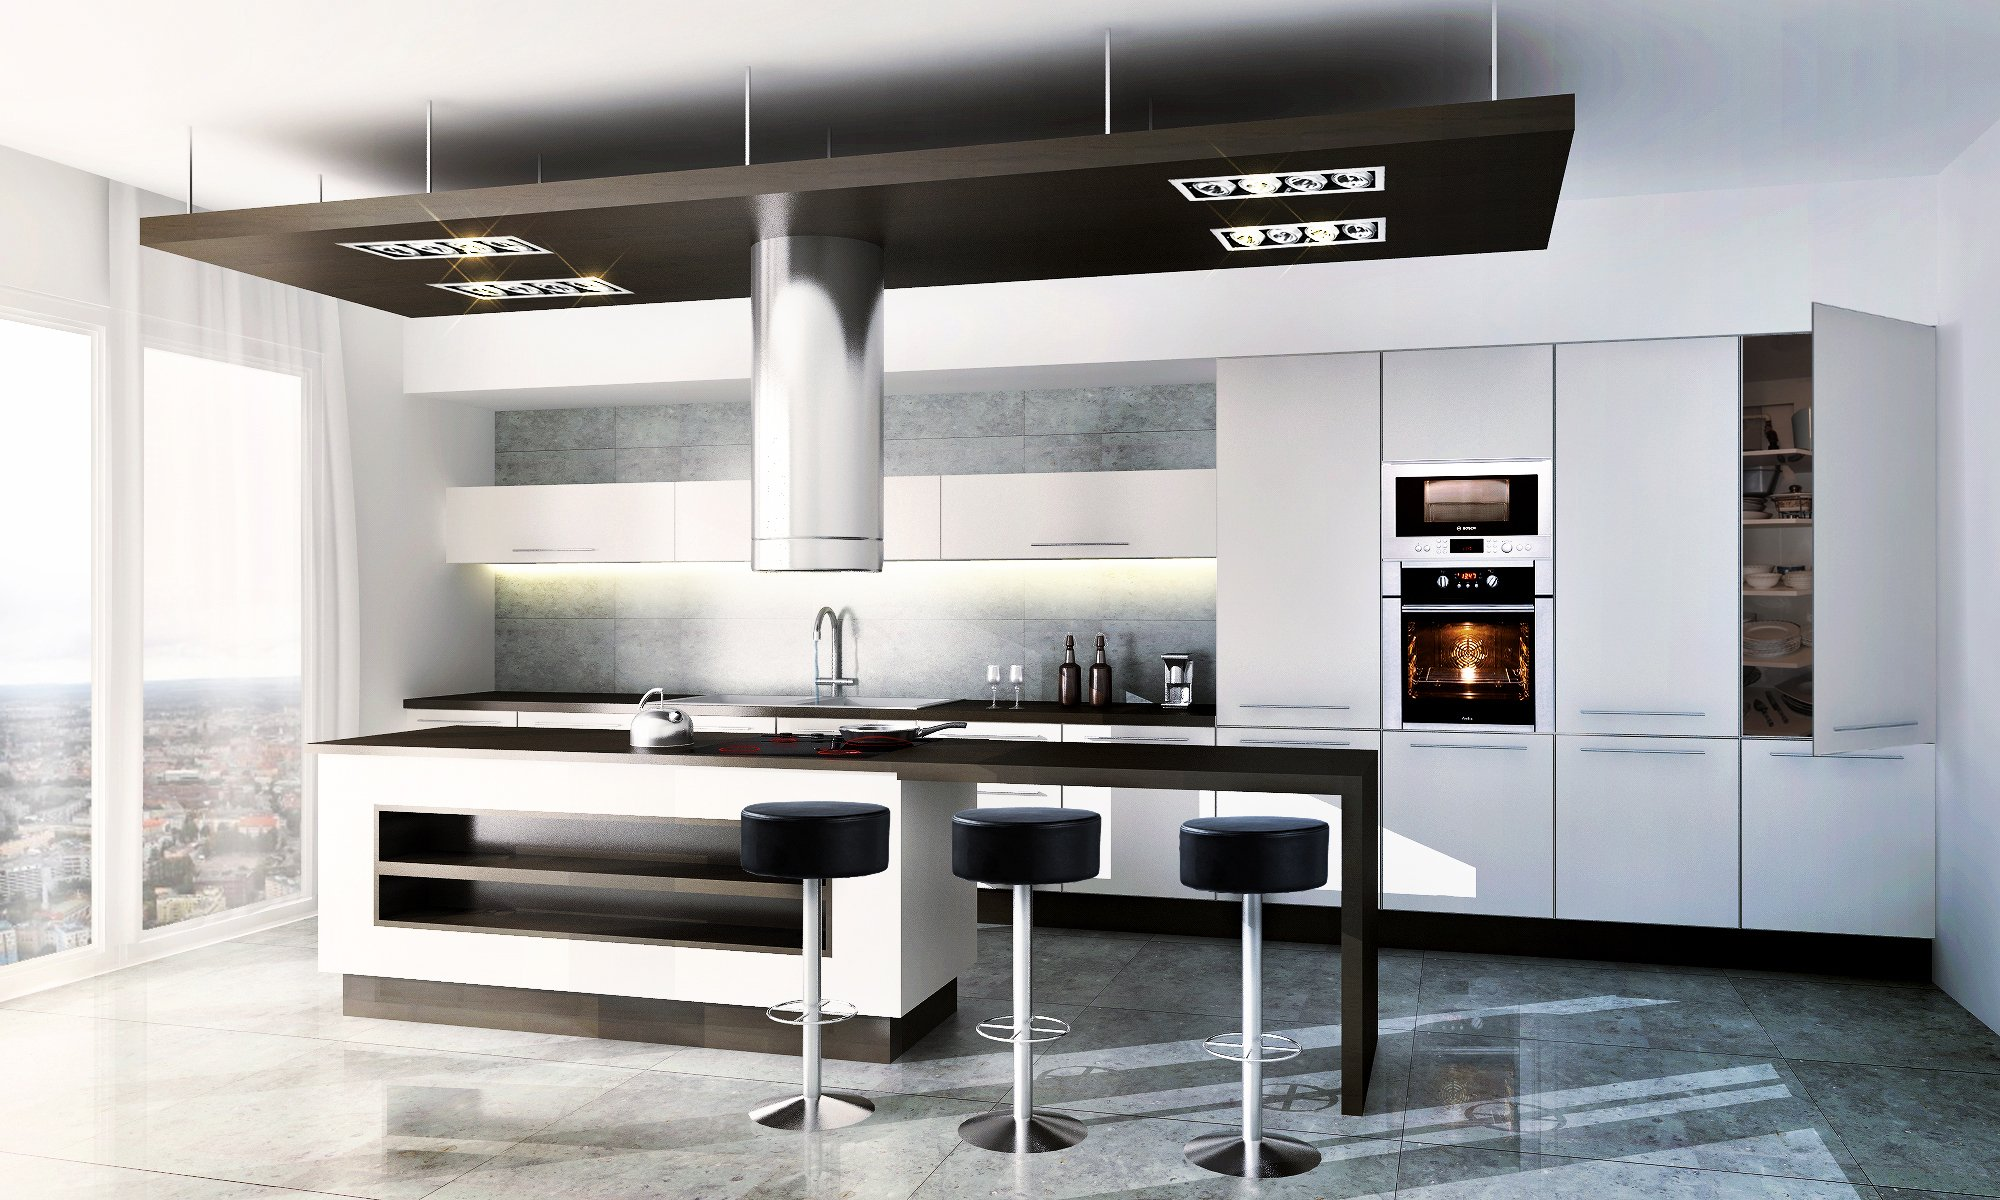 design a kitchen online free 3d vizblog with visualisations free 3d models free 392